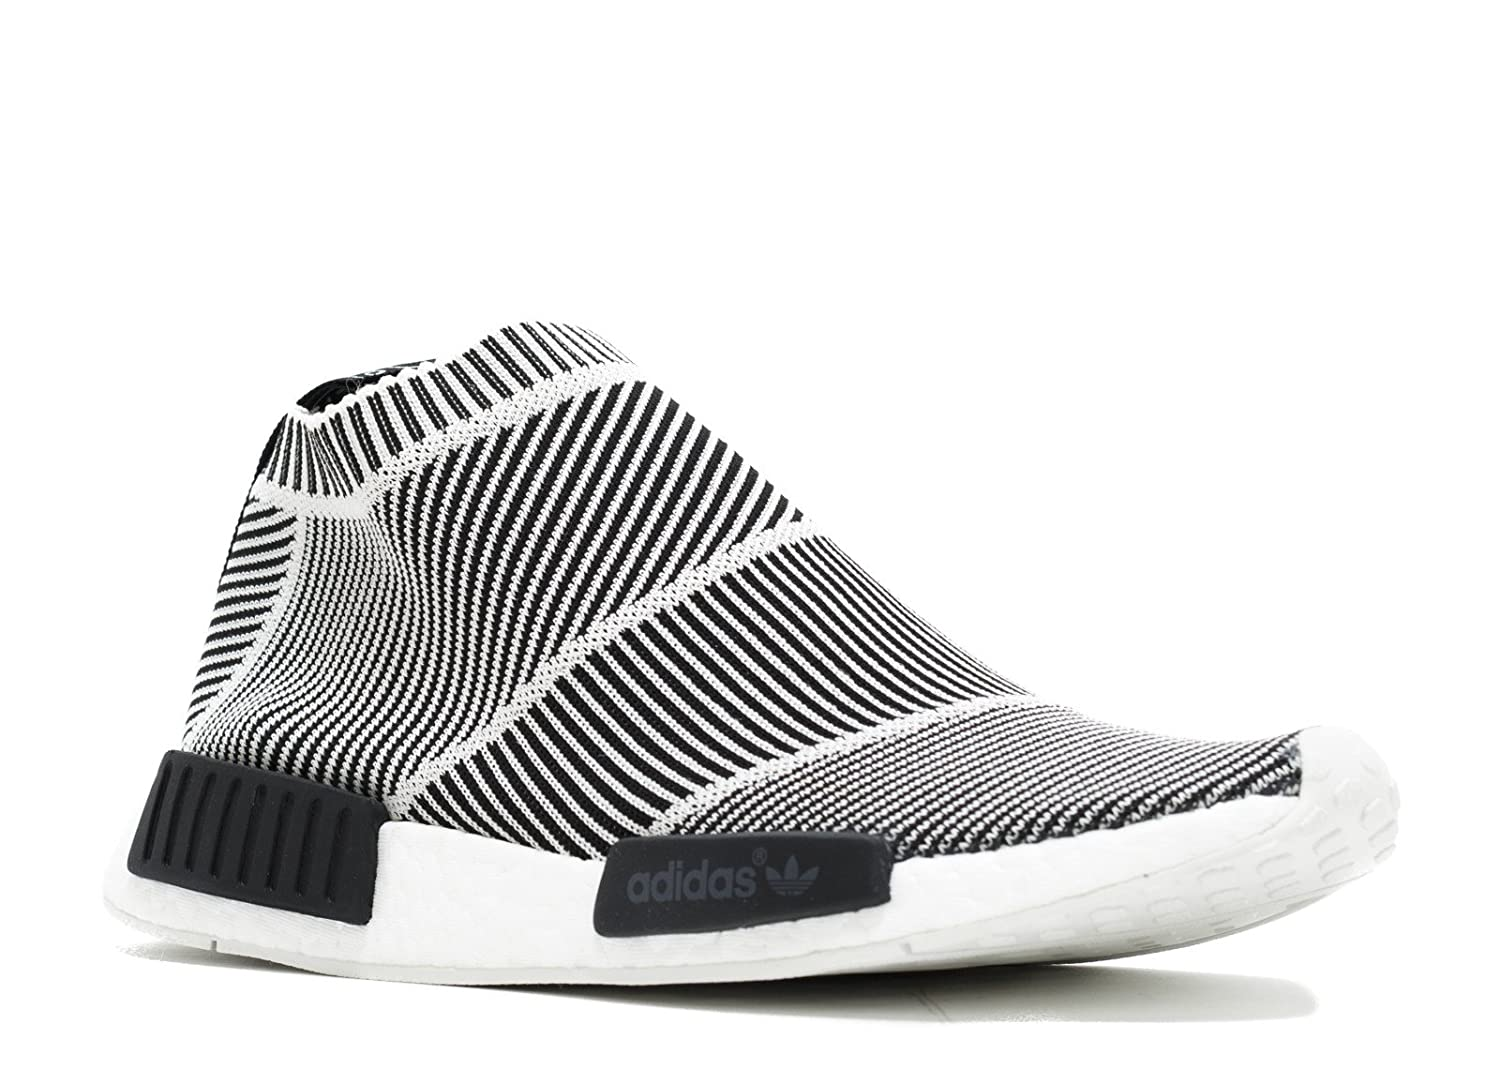 promo code 0f7ba 61b76 Amazon.com | adidas NMD City Sock PK - S79150 - Size 8.5 | Shoes